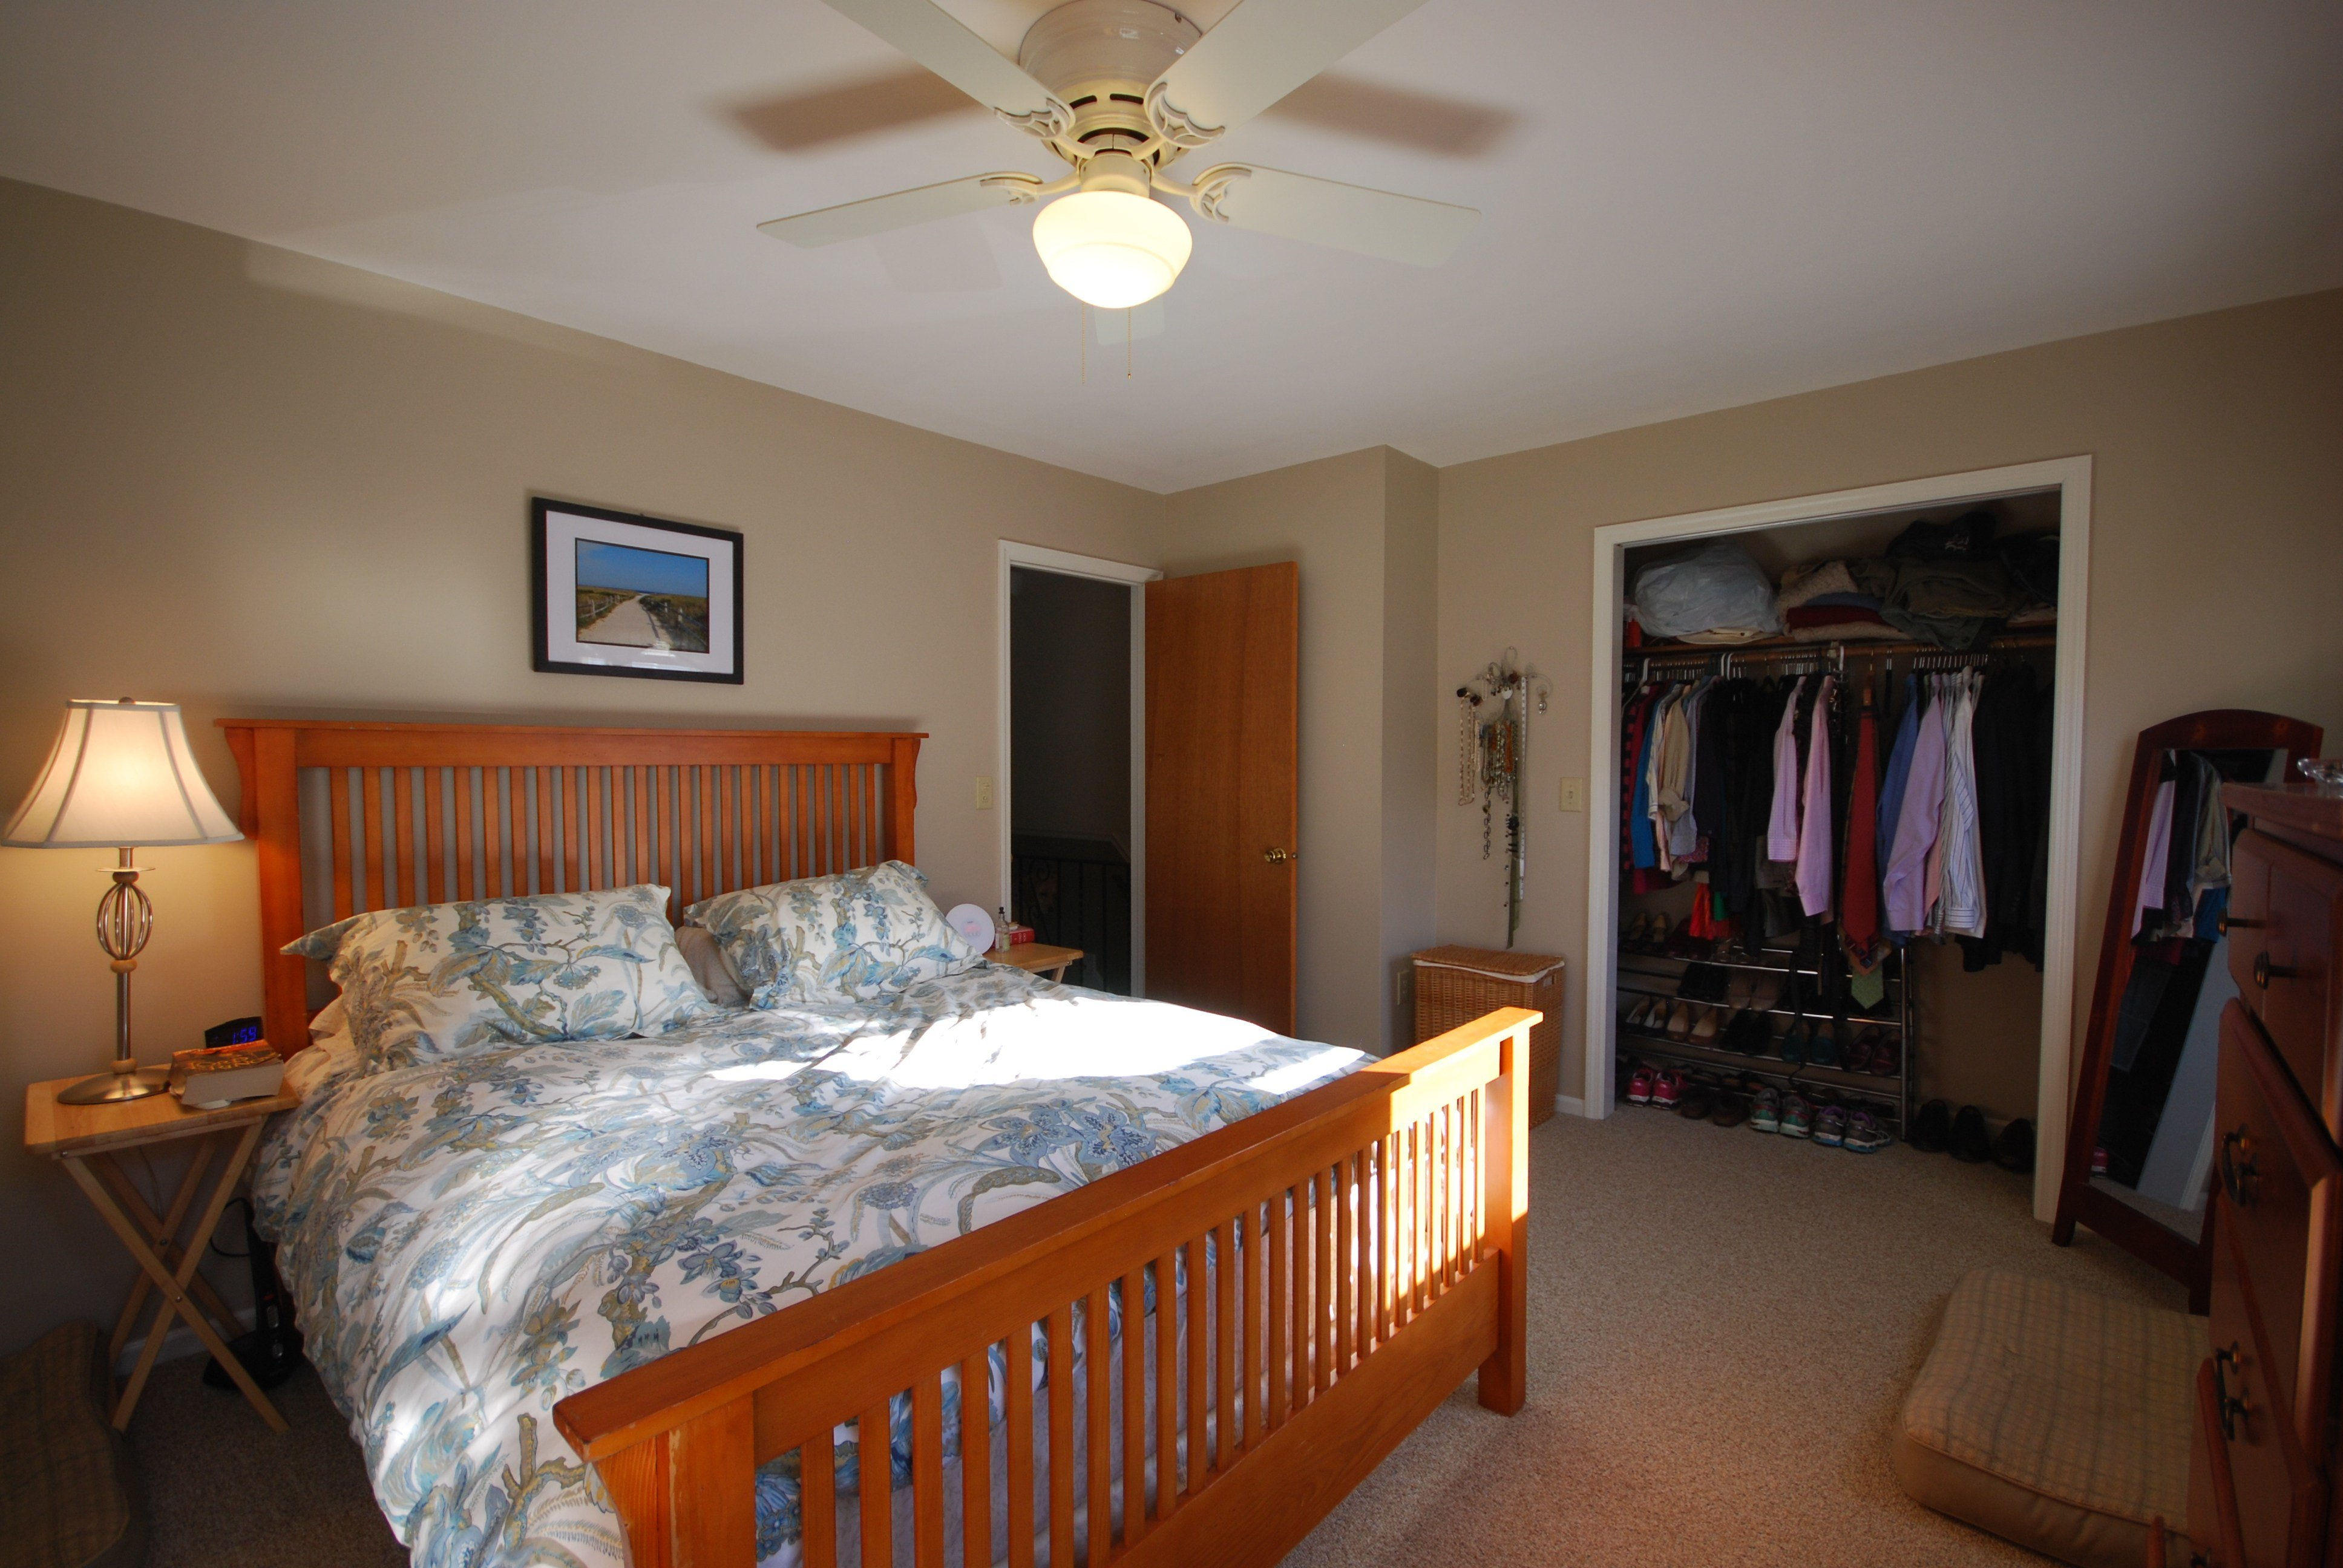 Best The Best Way Of Decorating Master Bedroom With Walk In With Pictures